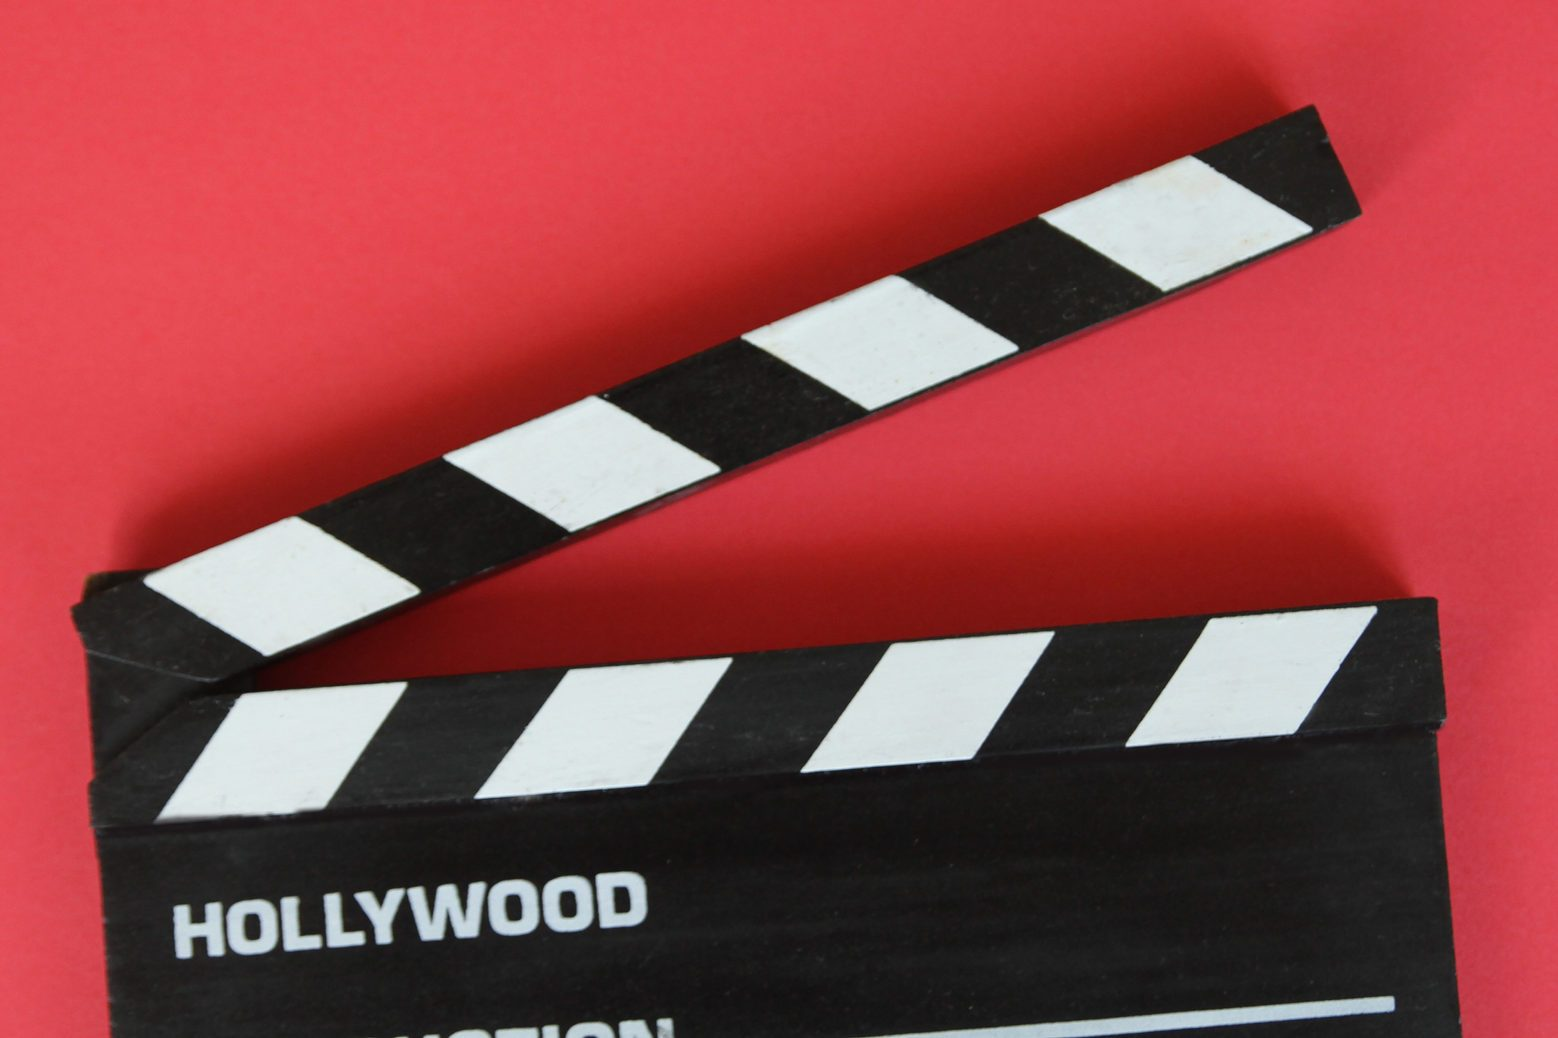 Filmmaker's Clapboard On Red Background.